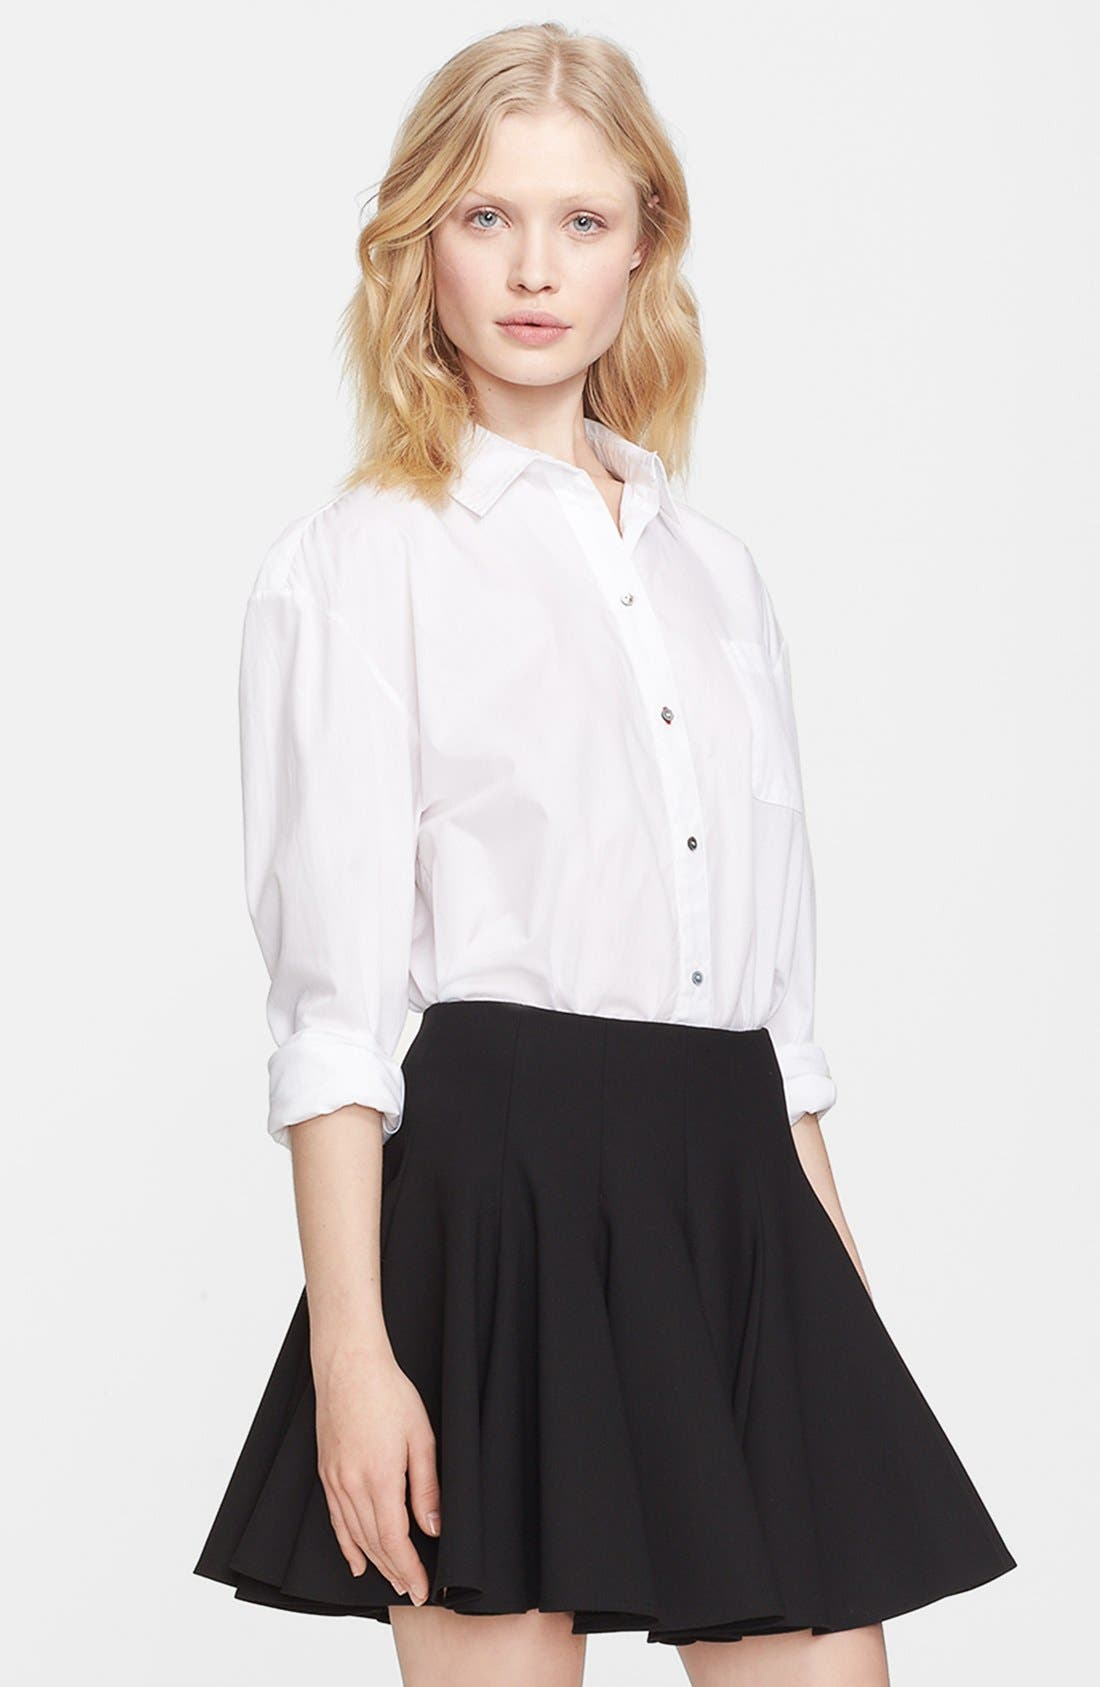 Alternate Image 1 Selected - Elizabeth and James 'Carine' Cotton Shirt